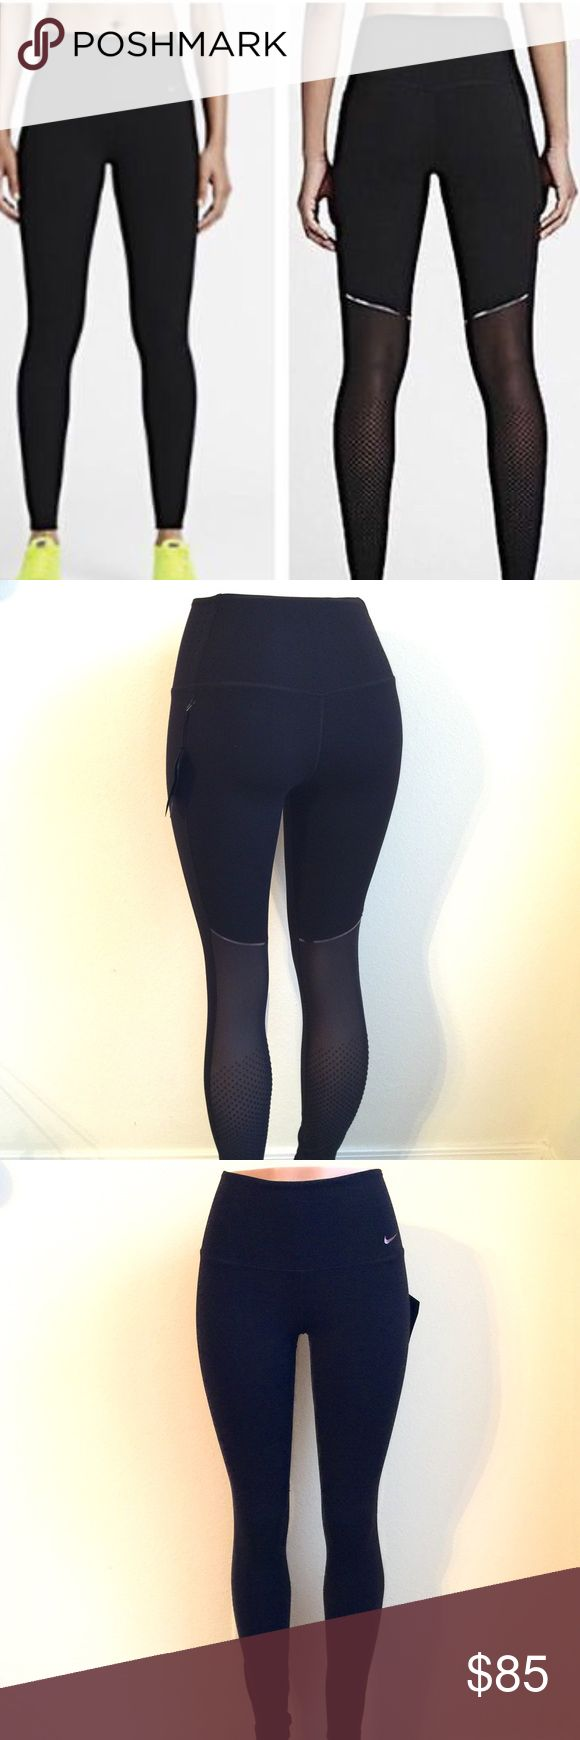 Nike Sculpt Cool Training Tights Sculpt Cool Women's Training Tights hug your legs from hip to hem and feature breathable mesh panels for unbeatable comfort and support during your workout. Strategic compression through the waistband, inner thighs and calves provides exceptional support and a flattering fit. The high-rise waistband is higher in the back for comfortable coverage and a locked-in feel as you bend and stretch. When your workout heats up, the mesh-lined waistband and back panels…